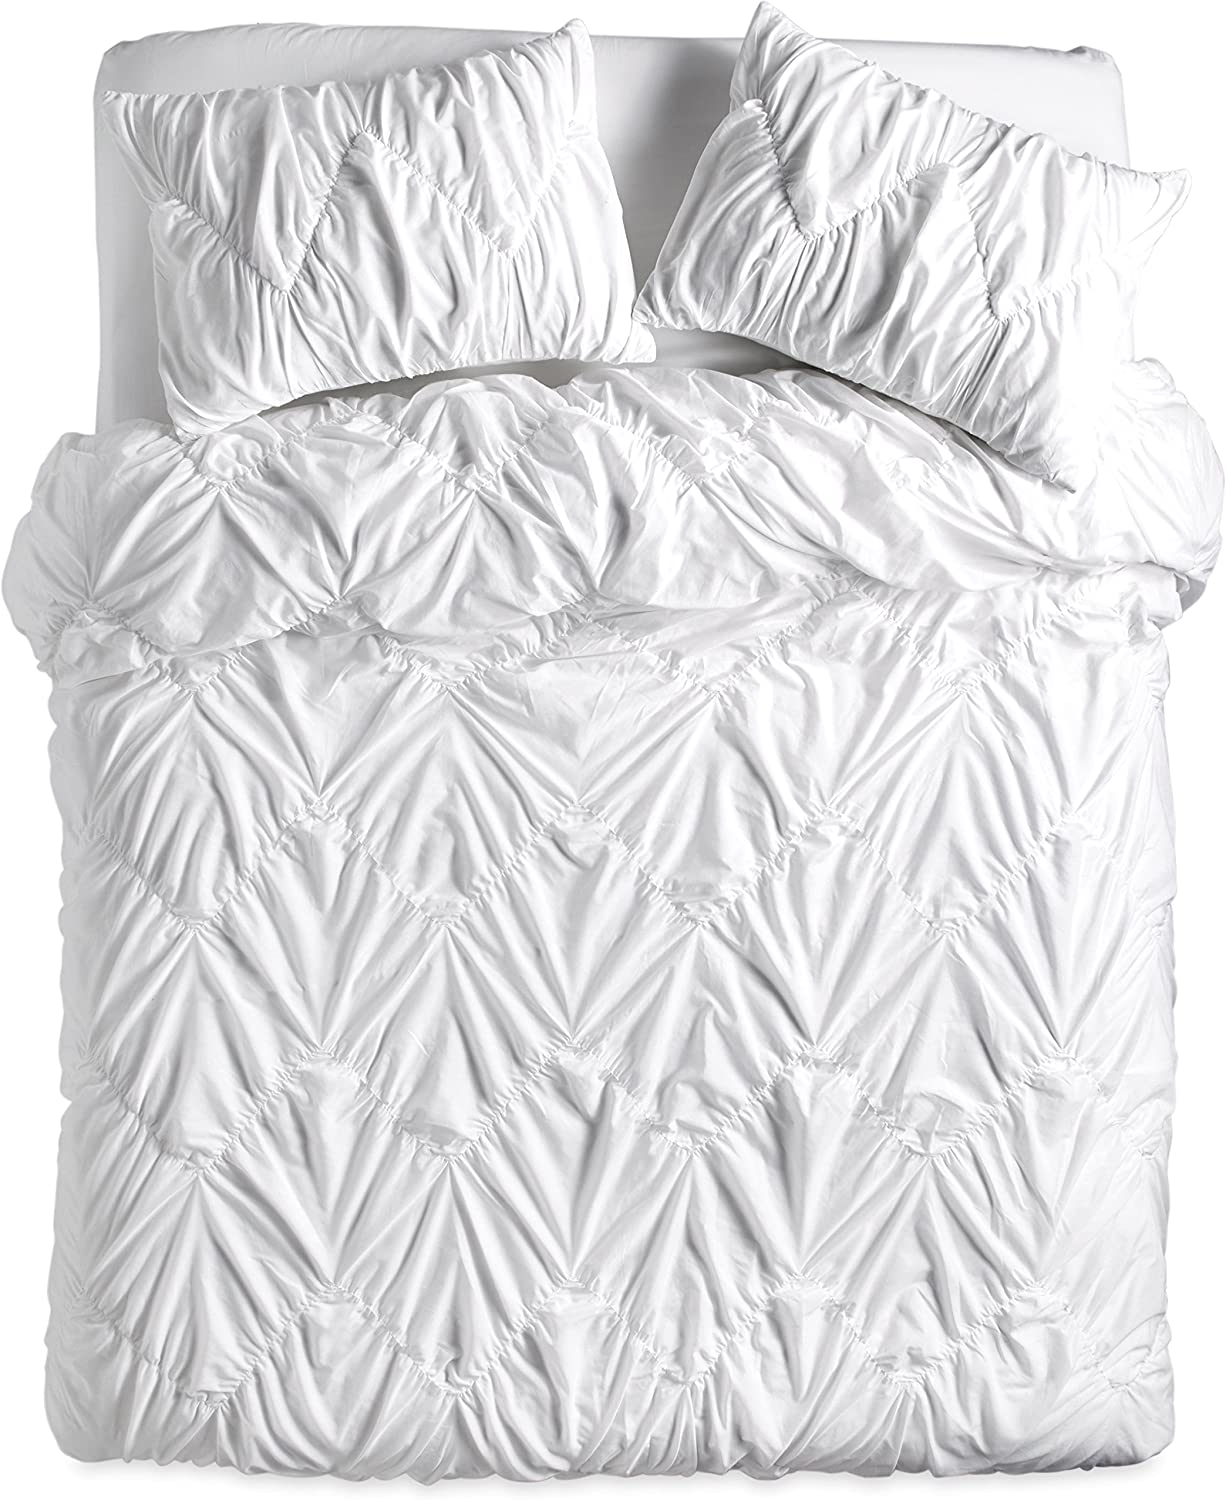 The Pioneer Woman Ruched Chevron Duvet Cover for Full Queen and King (King 106x 94, White)